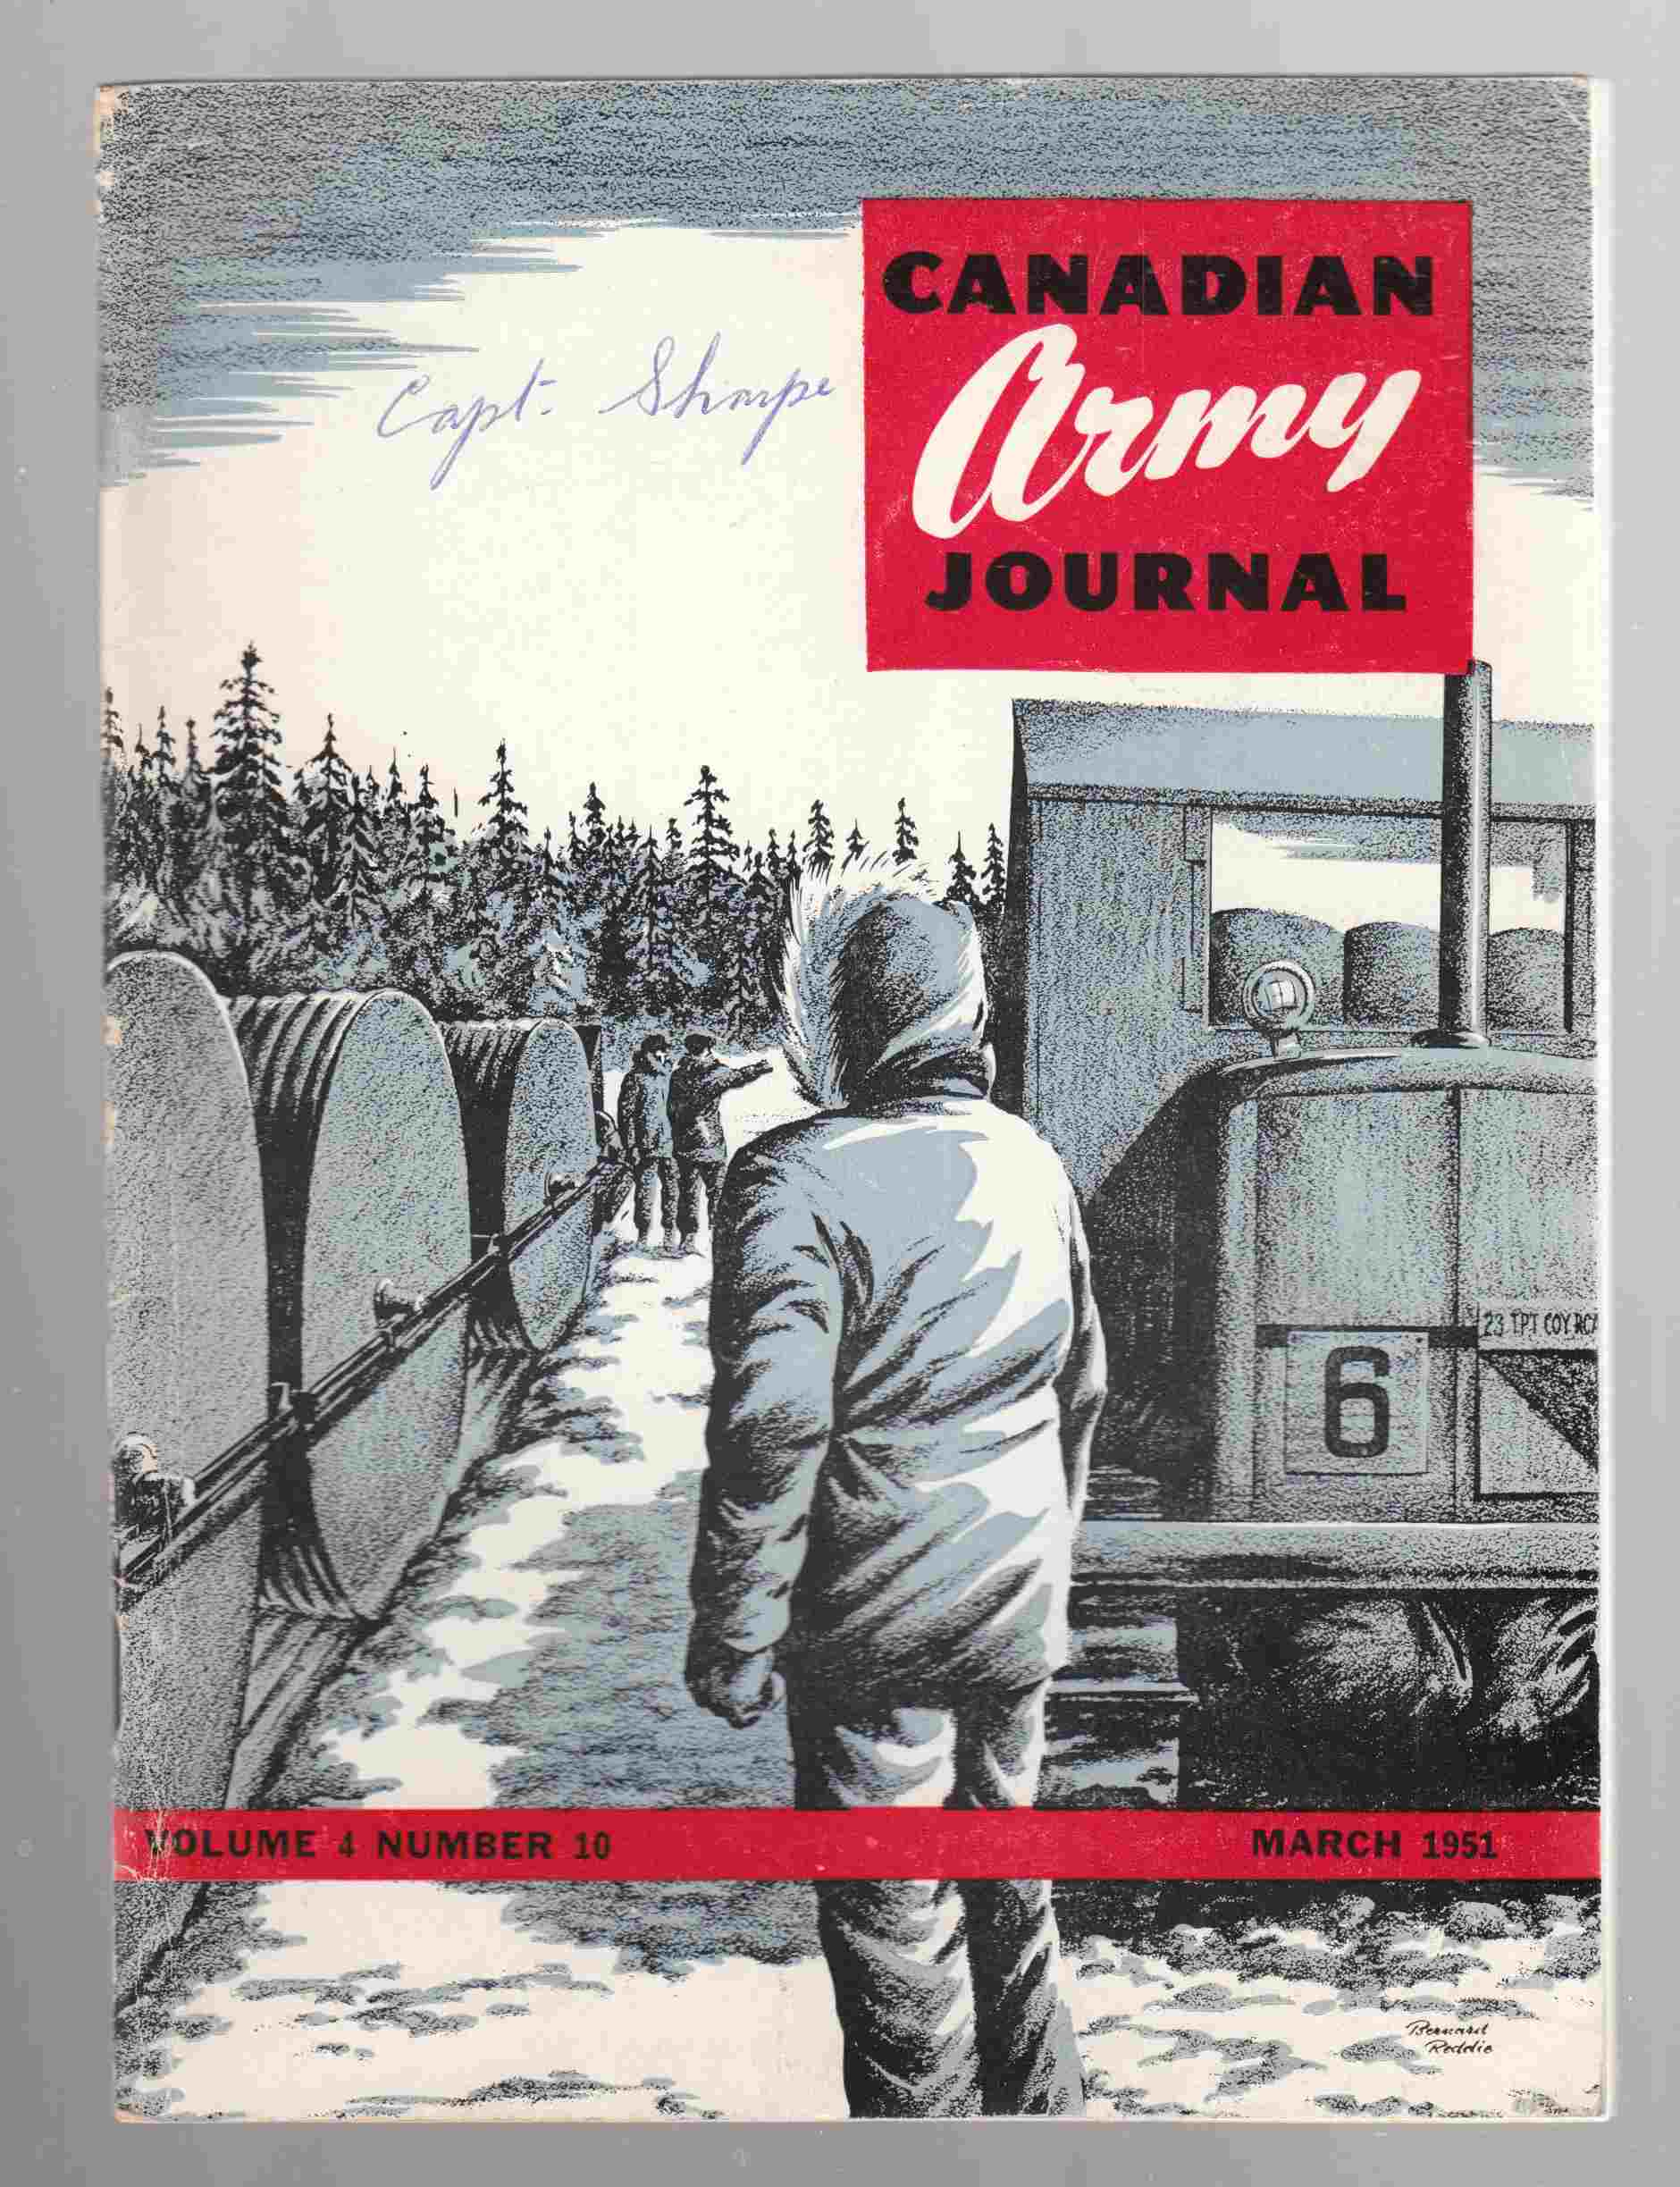 Image for Canadian Army Journal Volume 4 Number 10 March 1951